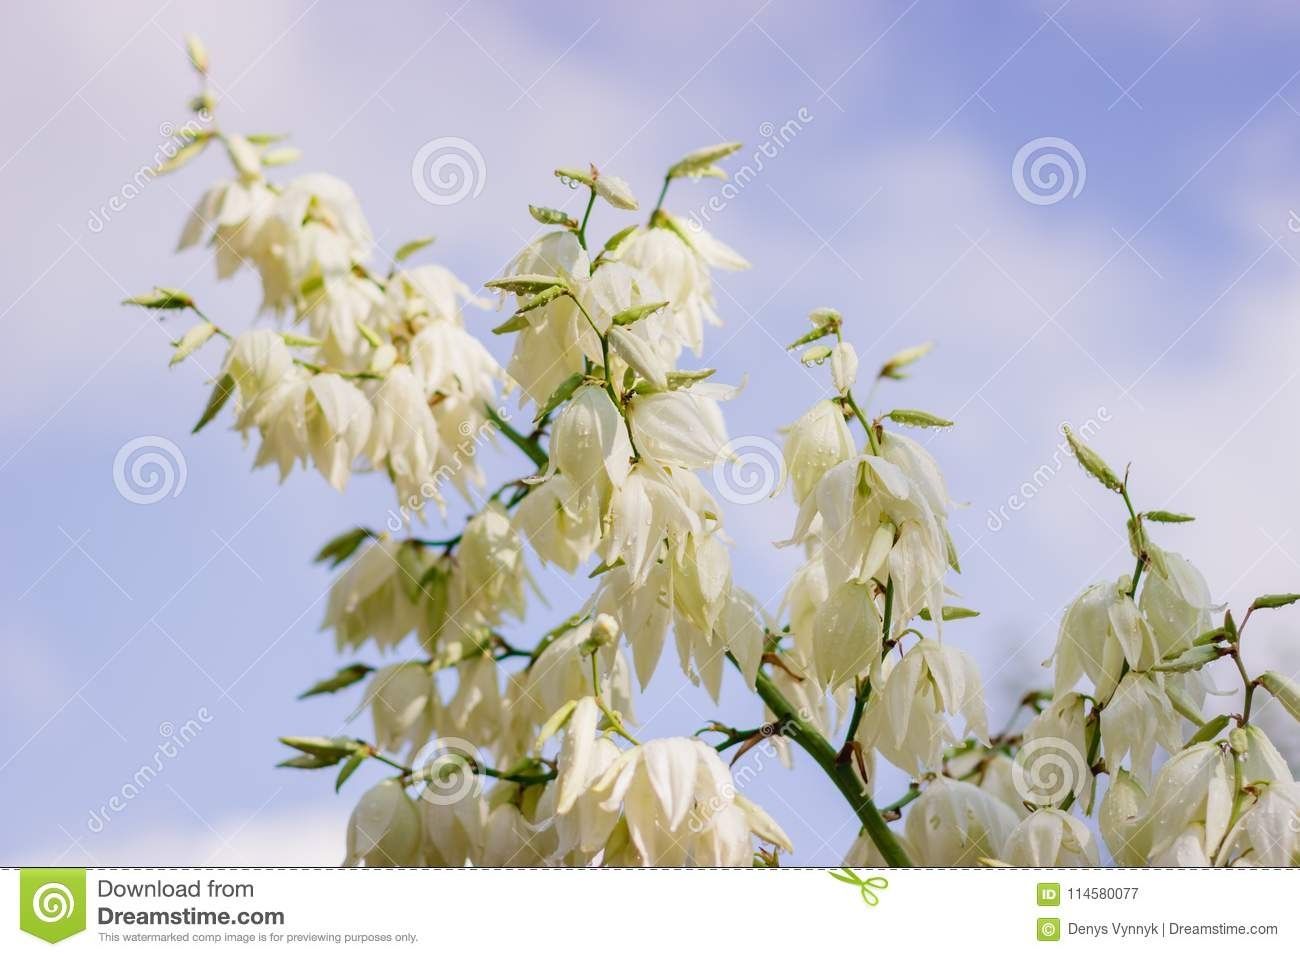 Close up of many flowers of the yucca plant in bloom.